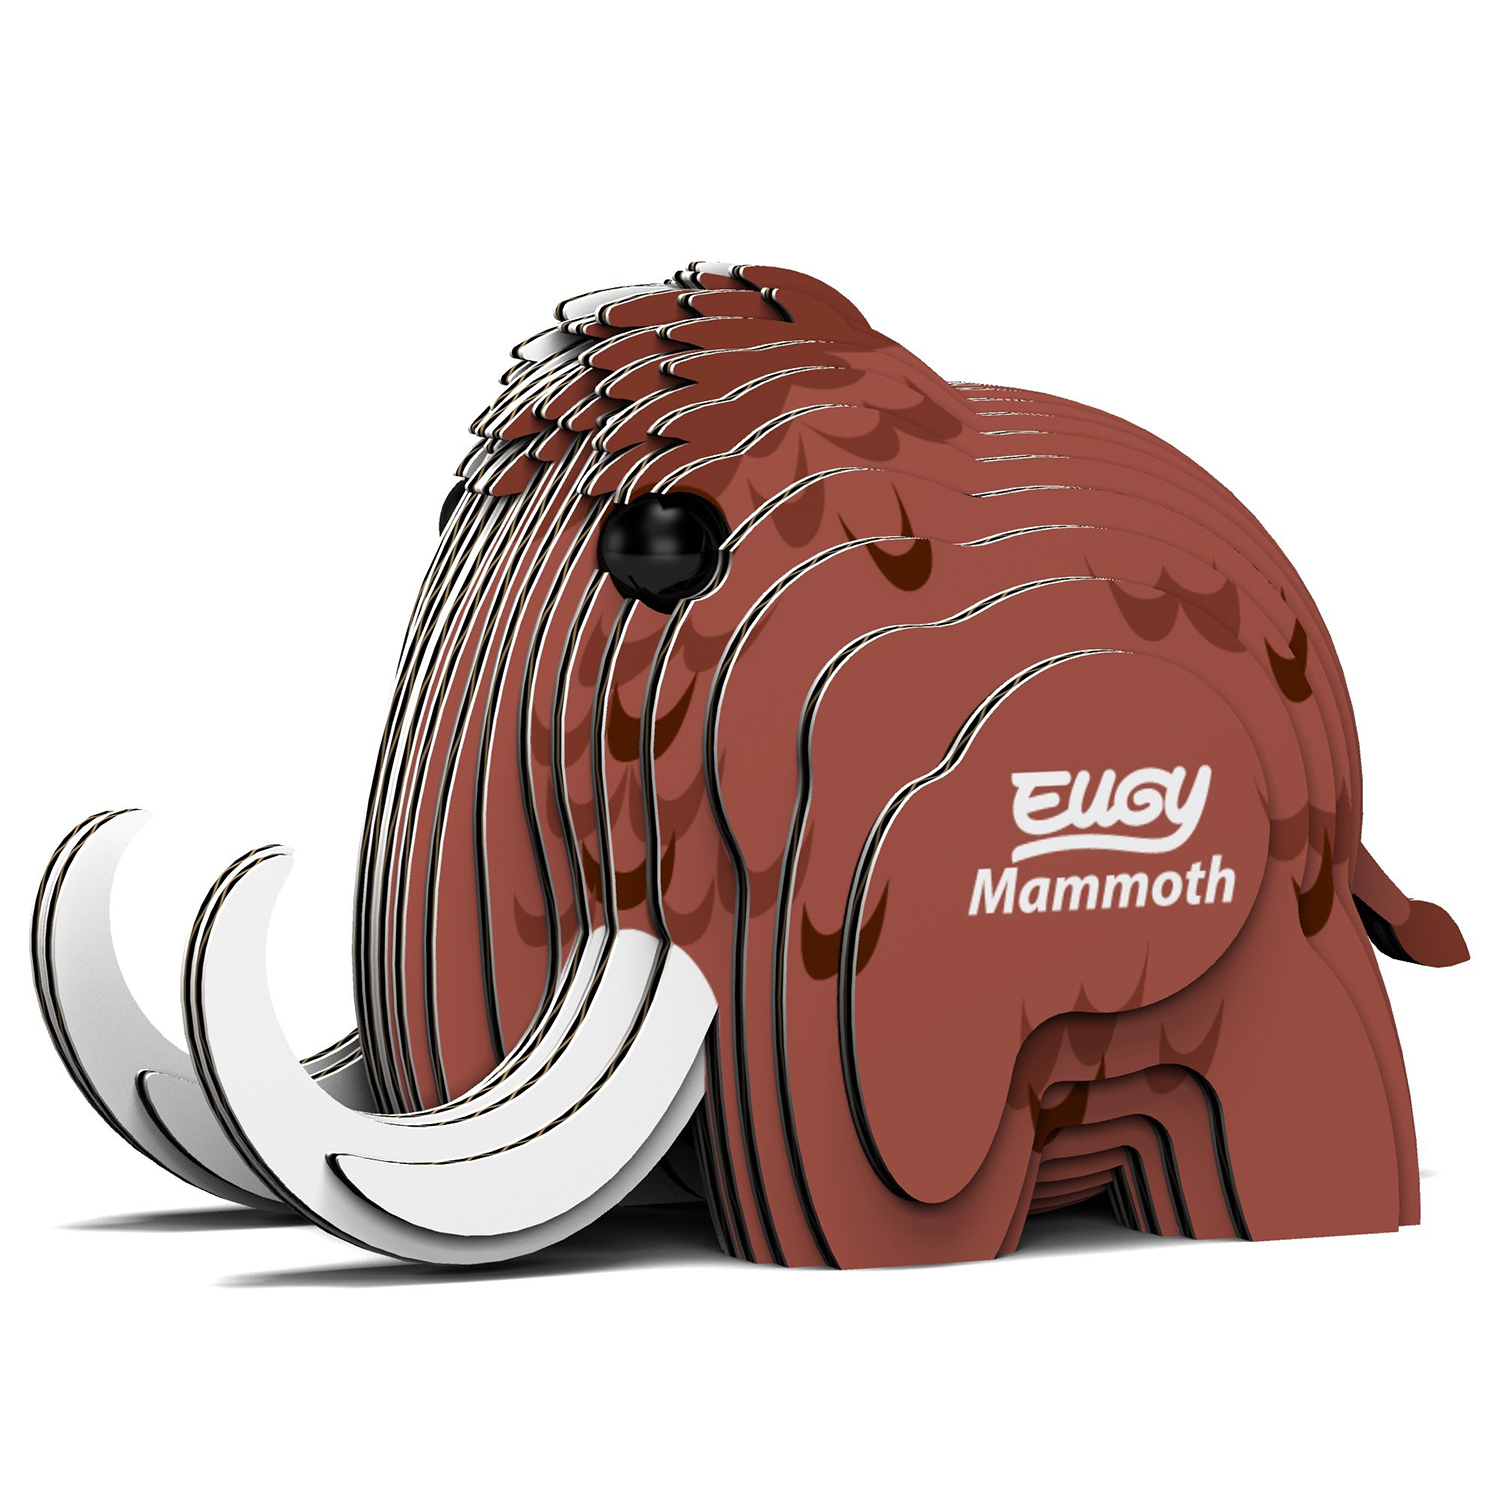 Mammoth Eugy Animals 3D Puzzle